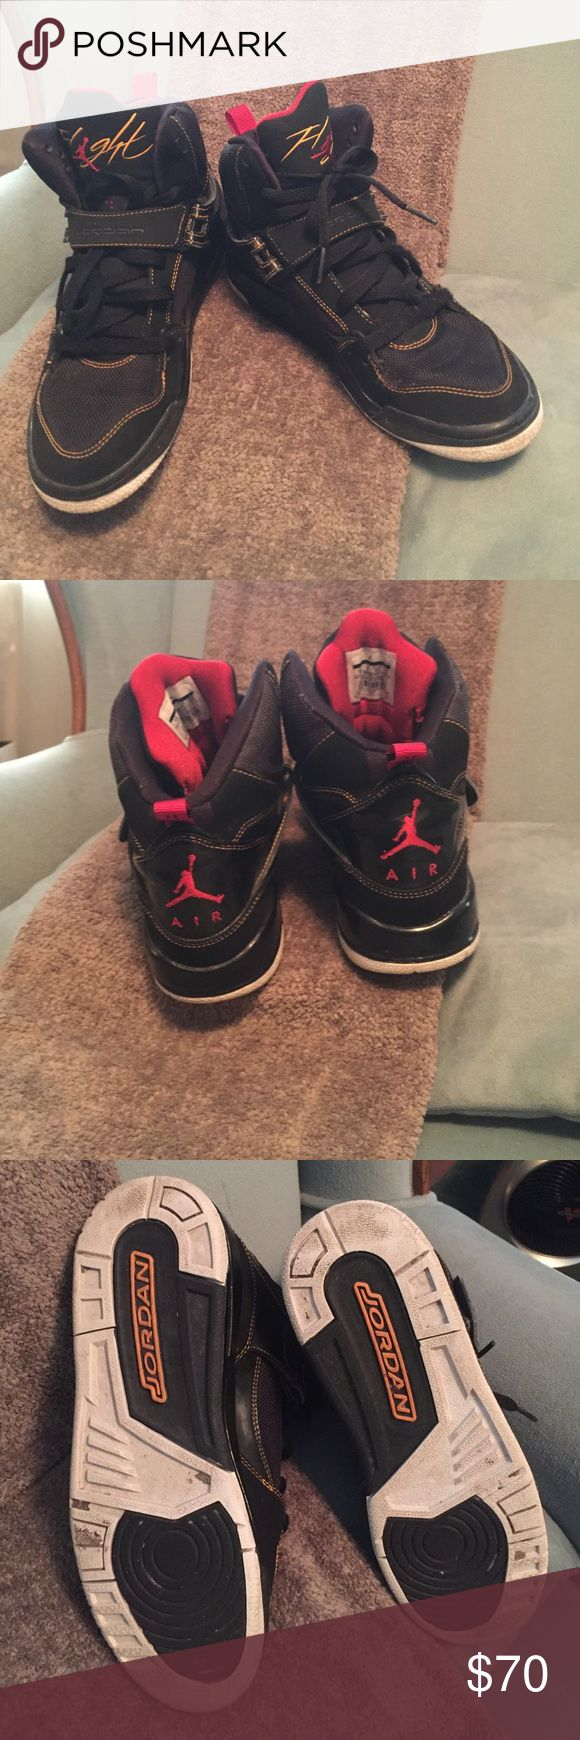 JORDAN Flight Black with gold trim, Removable strap, high top, size 7y Great used condition. Taken Reasonable Offers Jordan Shoes Sneakers